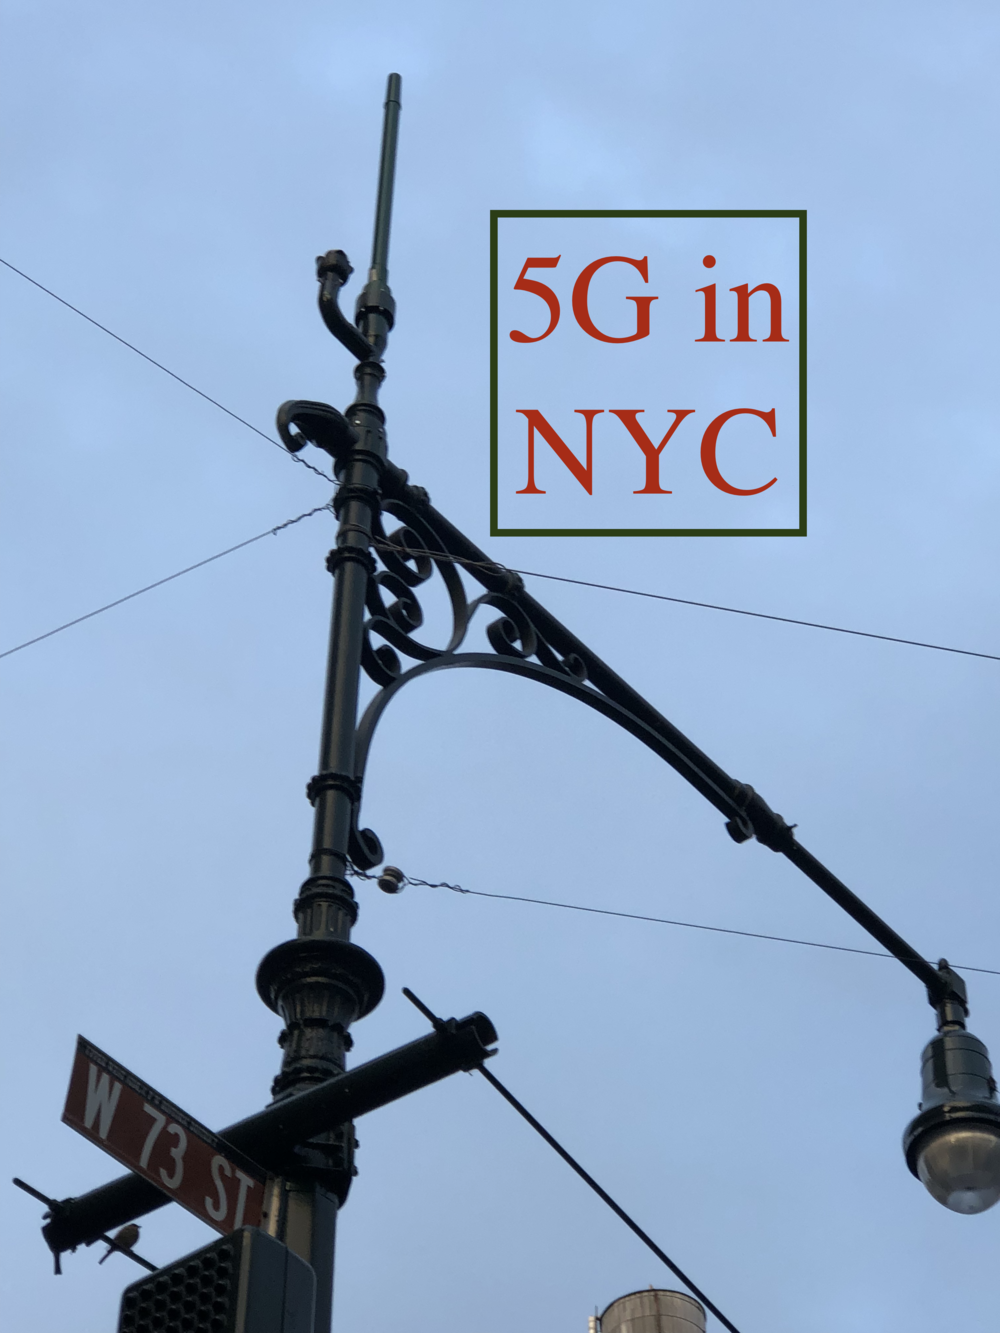 Notice the 5G antenna on top of this this iconic lamp post on Columbus Avenue. 5G antennas are spaced out about every 100 yards. Planck's Law states that the higher the frequency, the higher the energy. Considering that there has not been a long-term exposure testing for 5G and that the National Institute of Health found 2G and 3G to cause cancer, we New Yorkers may be grinding our teeth even more.